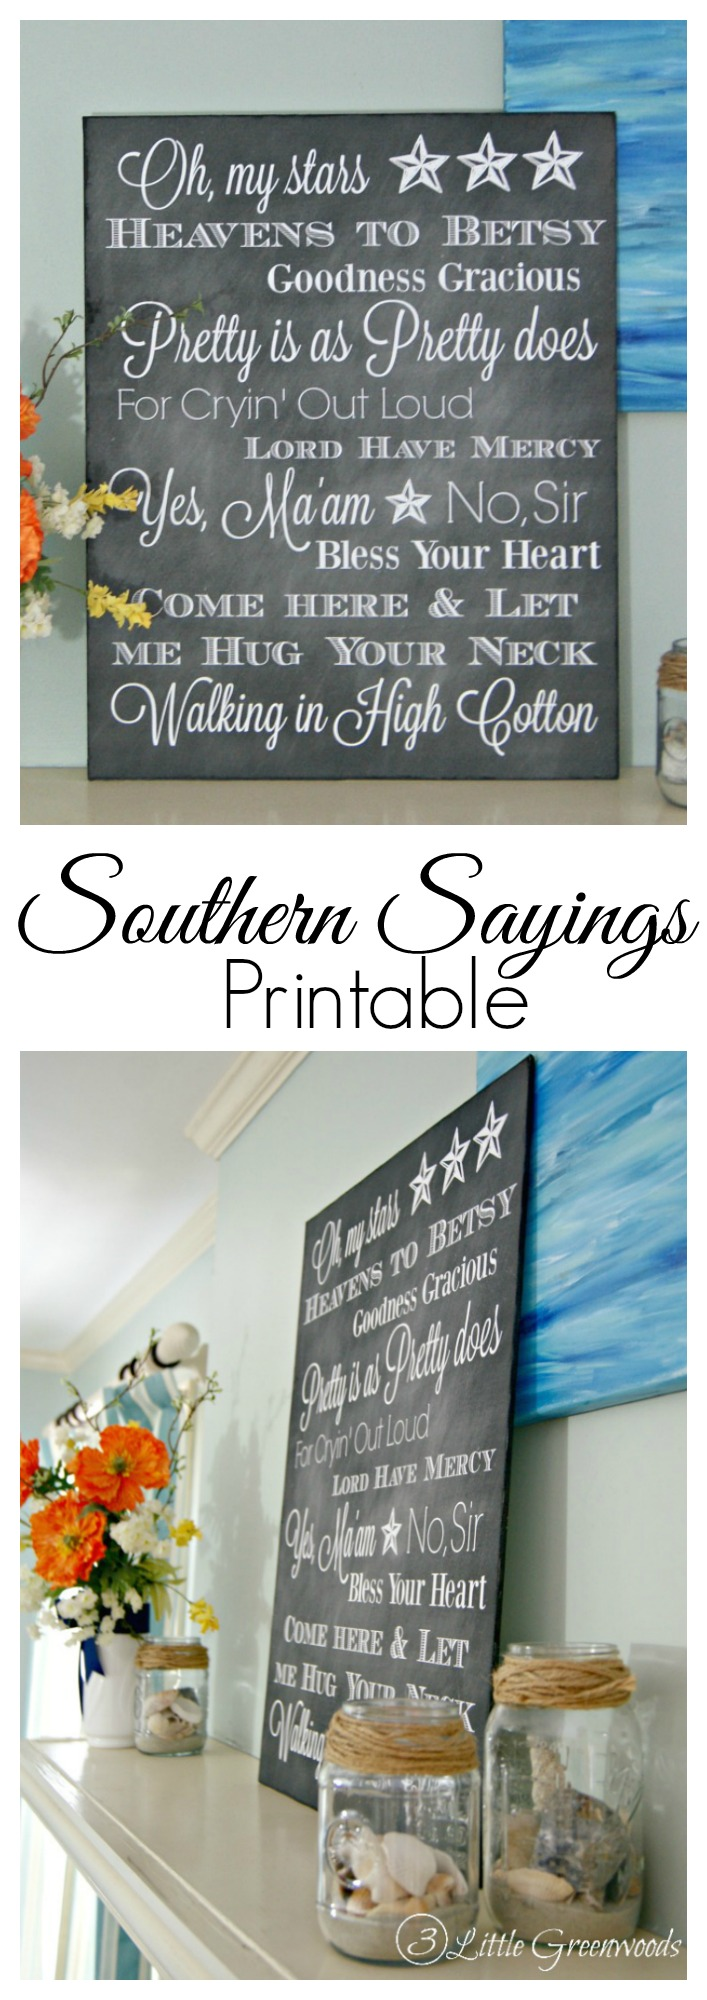 FREE chalkboard printable of Southern expressions! Southern Sayings Printable that's full of traditional Southern quotes ~ perfect for a gallery wall! 3 Little Greenwoods